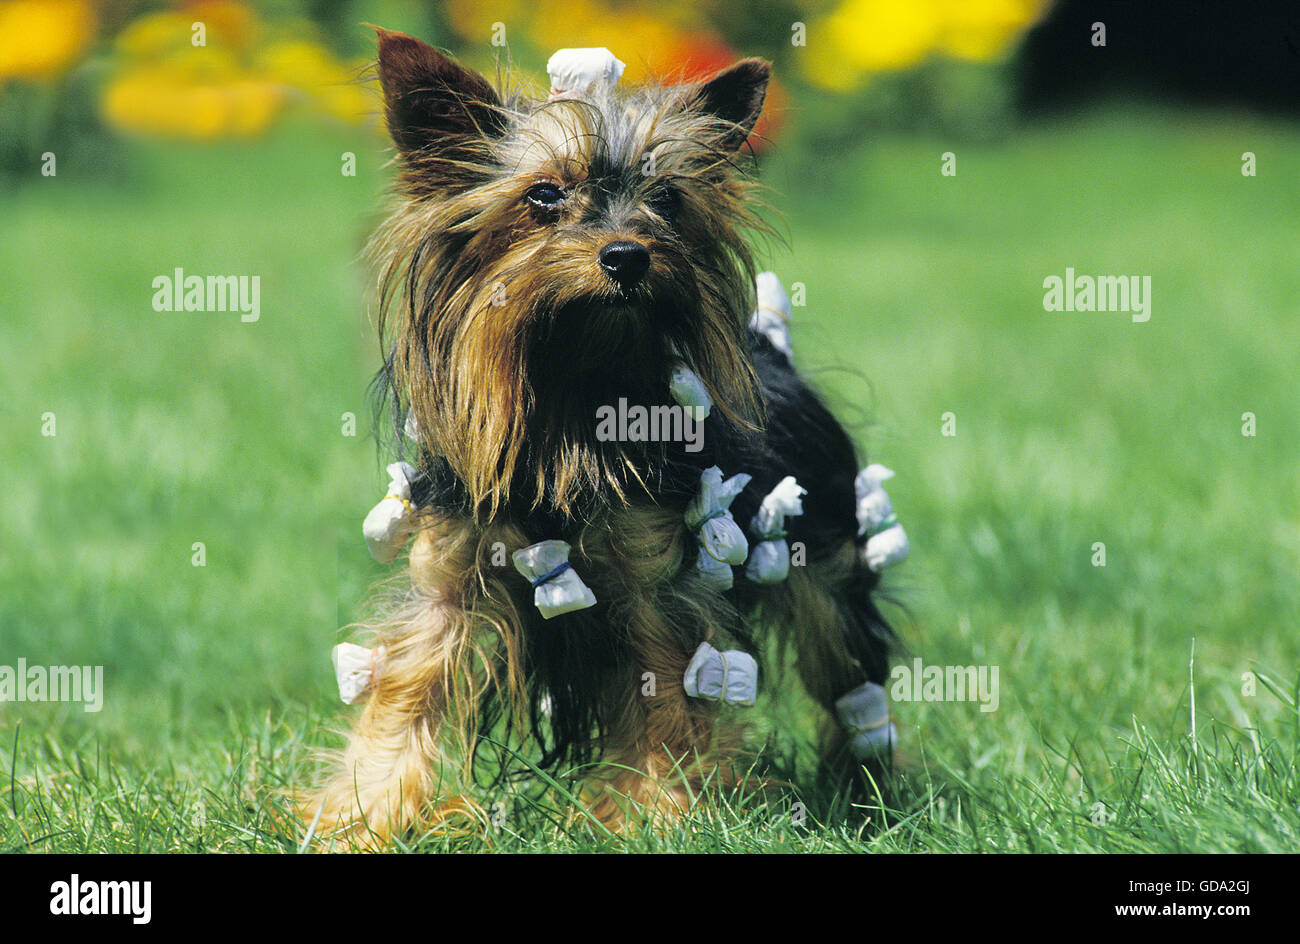 Yorkshire Terrier Grooming Stock Photo 111474290 Alamy